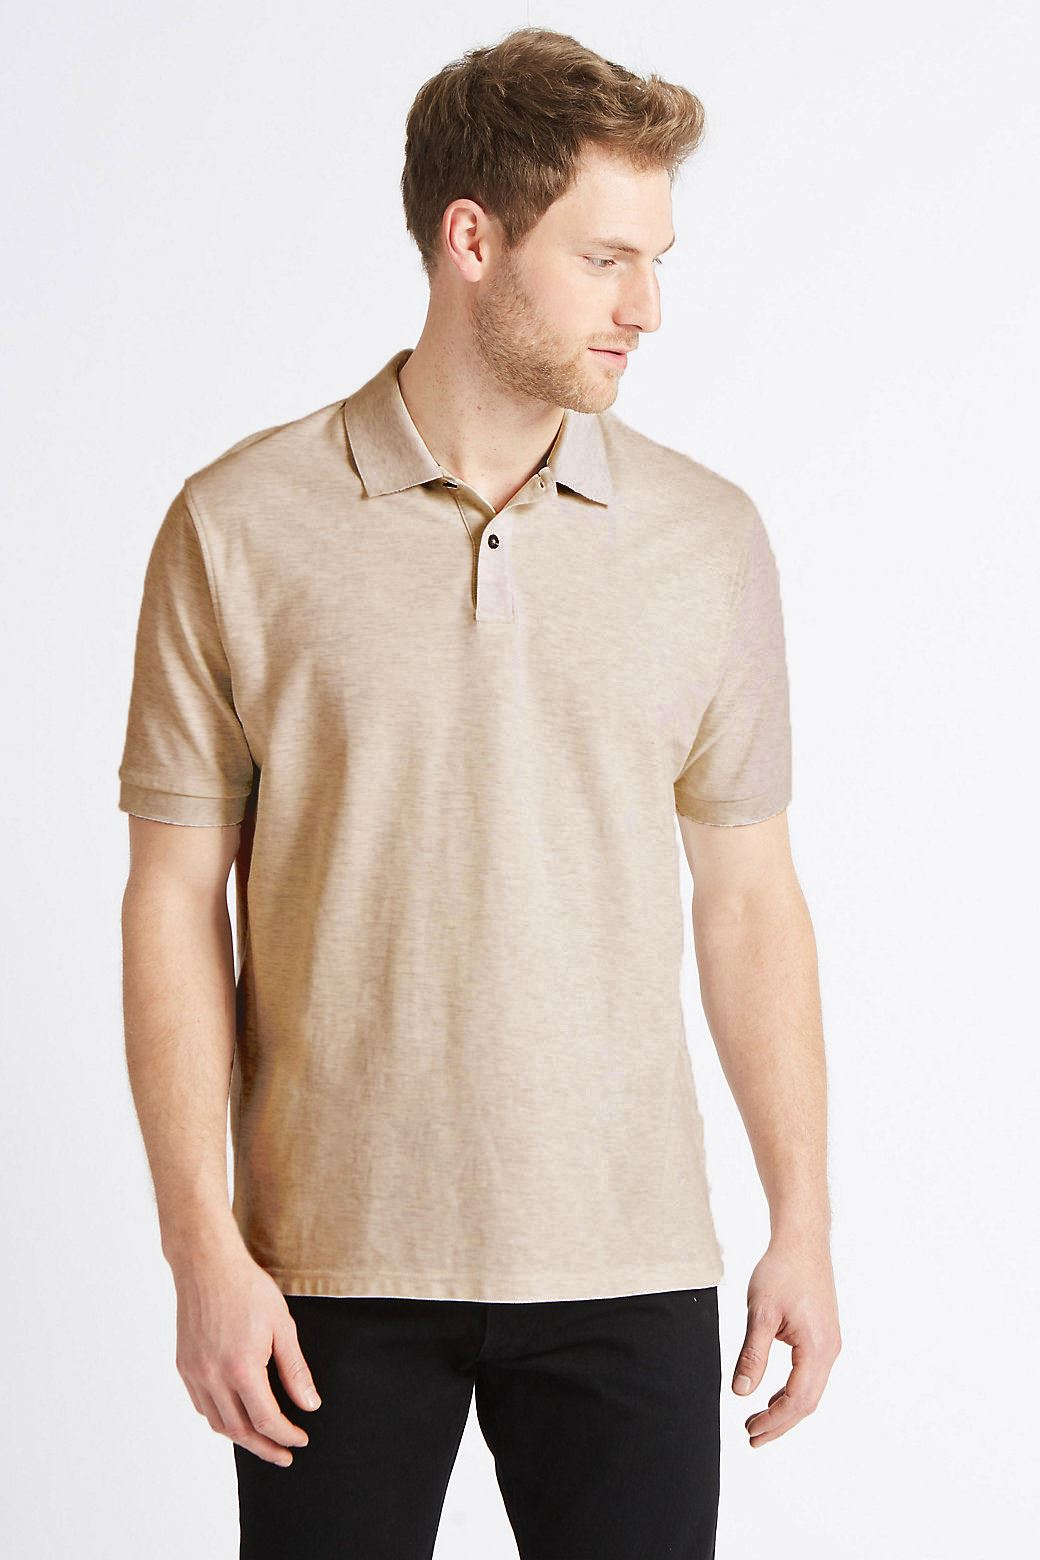 Ex-Marks-and-Spencer-Mens-Cotton-Pique-Polo-Shirt-NEW-Sizes-S-3XL thumbnail 4